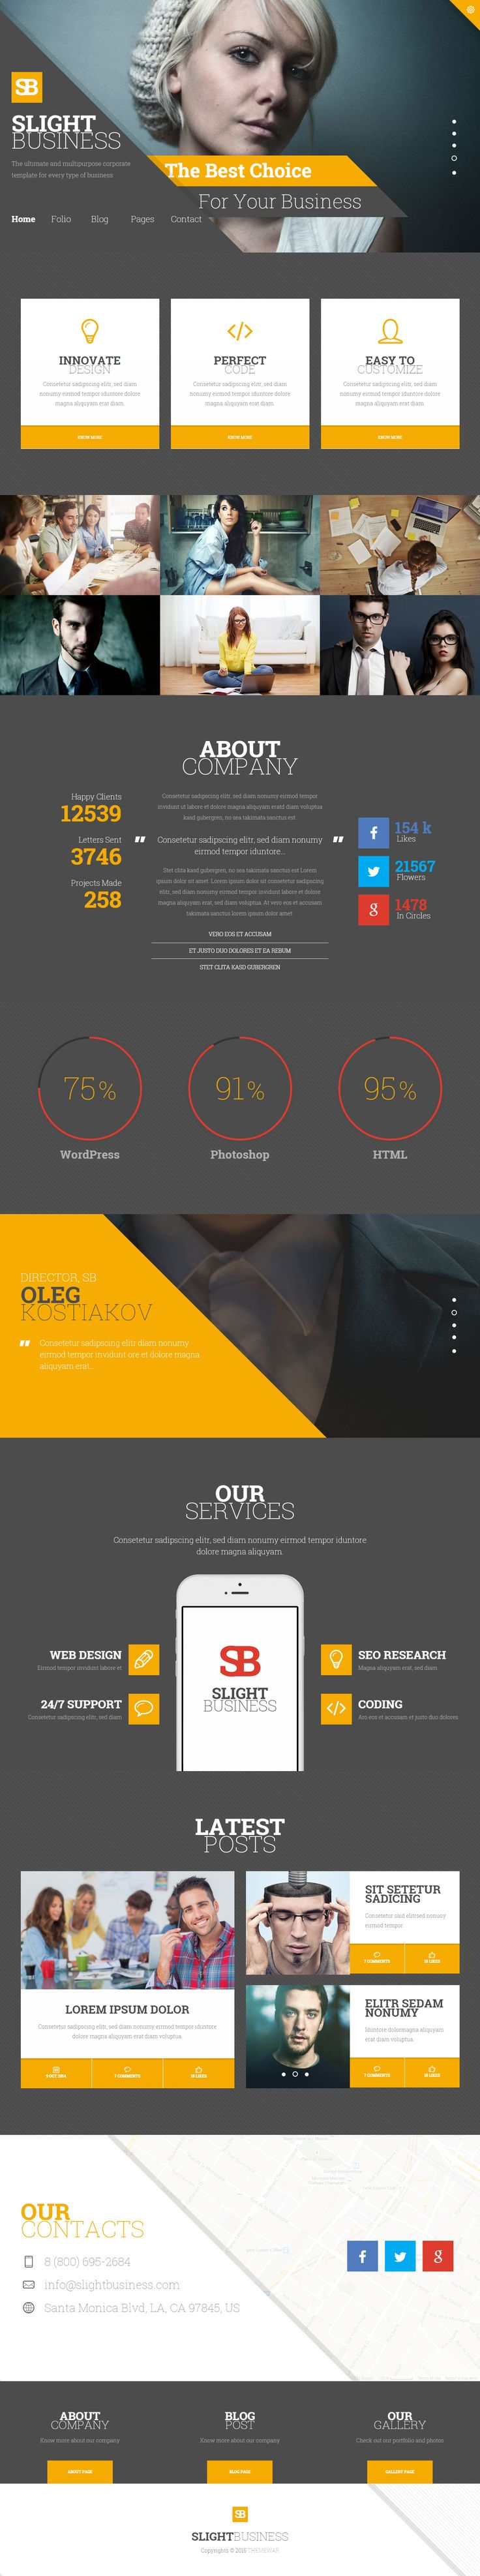 Slight Business is Premium full Responsive Retina Corporate HTML5 template. Bootstrap Framework. Google Map. Google Fonts. Test free demo at: http://www.responsivemiracle.com/cms/slight-business-premium-responsive-corporate-html5-template/